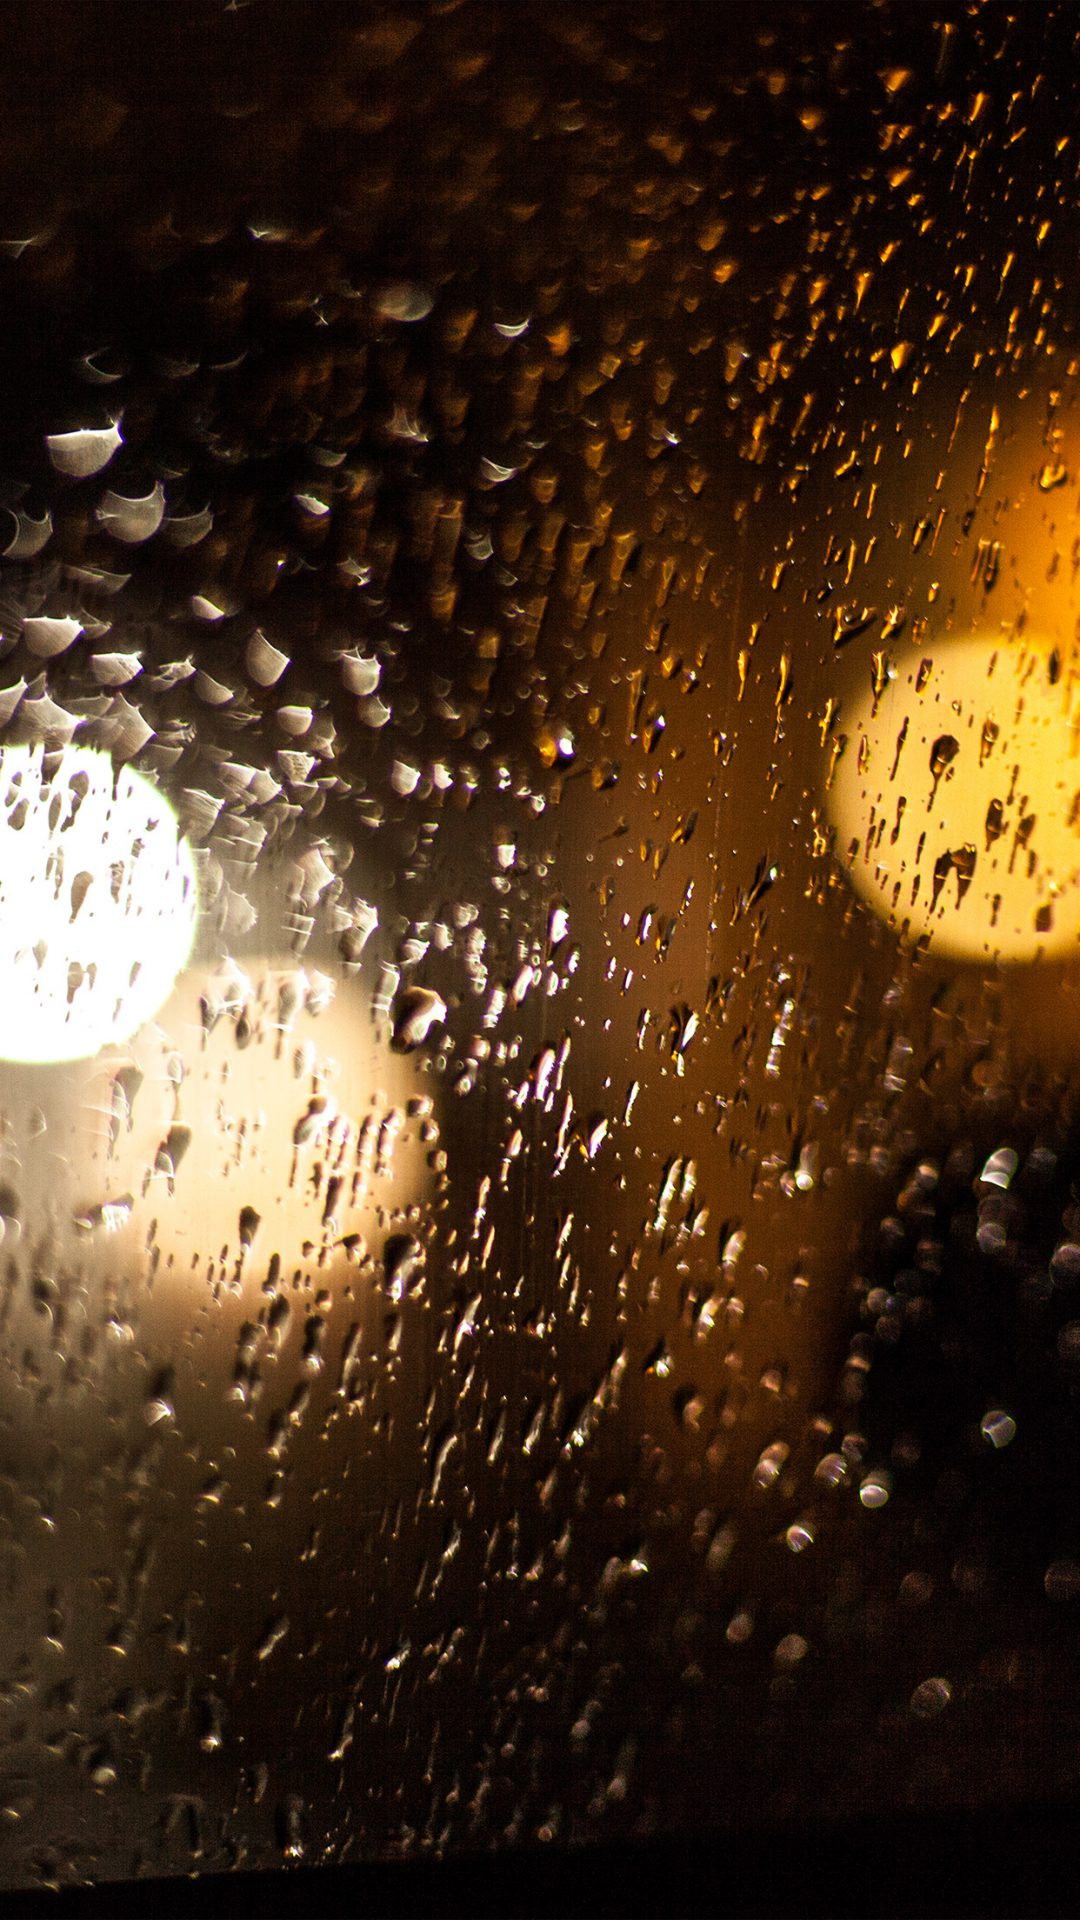 Rainy Night Drops Bokeh Orange Pattern